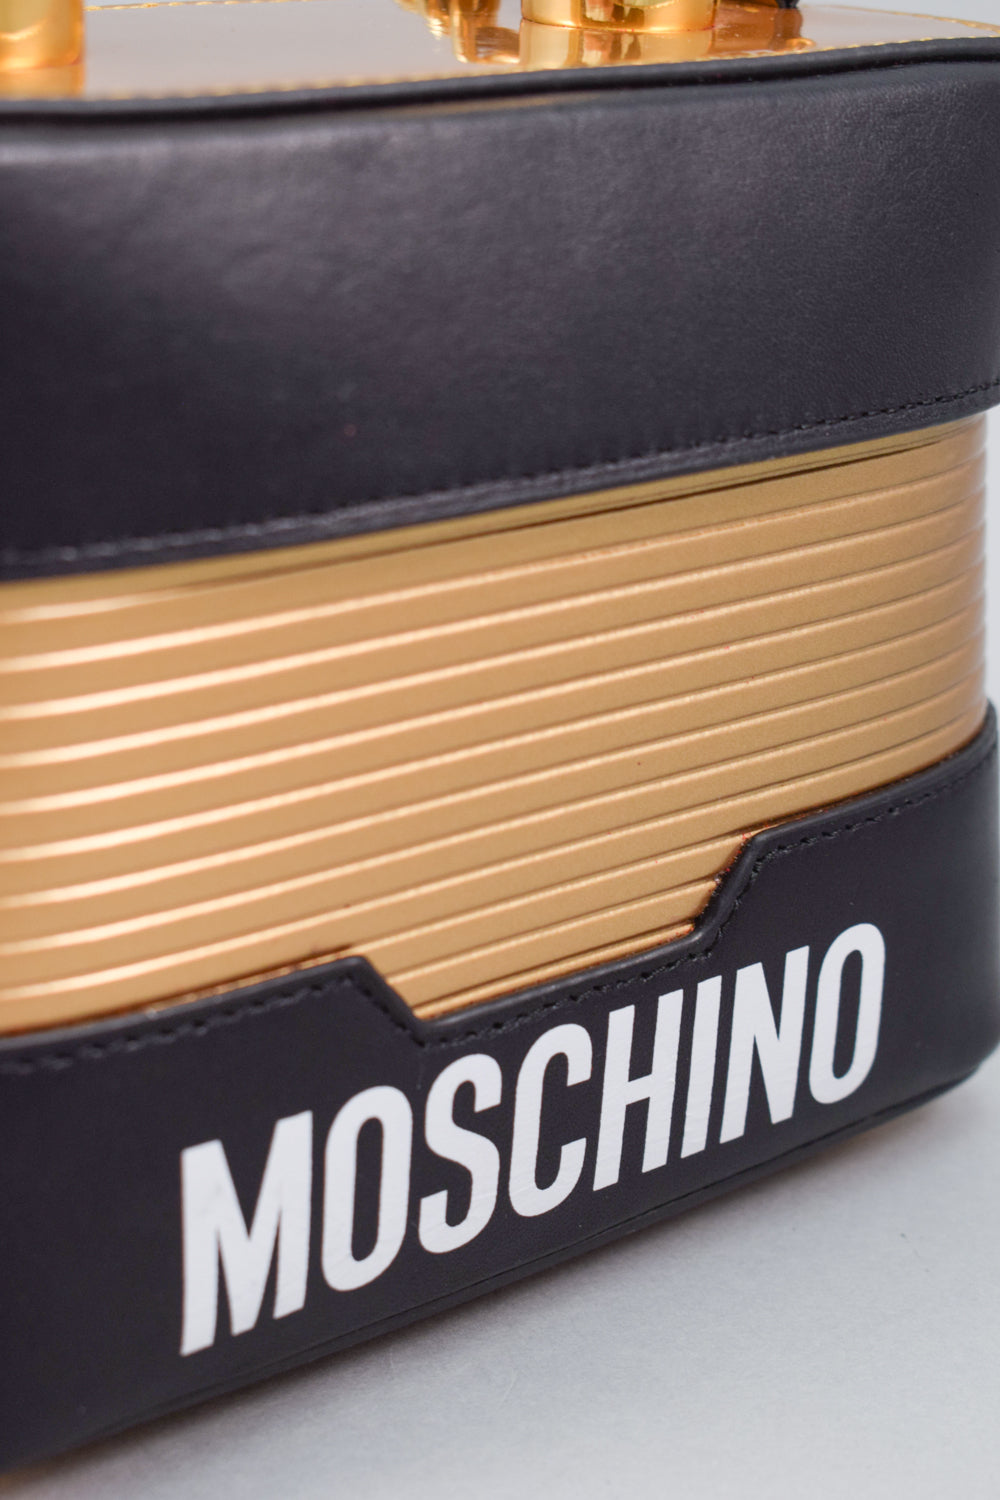 H&Moschino Black/Gold Lock Handbag